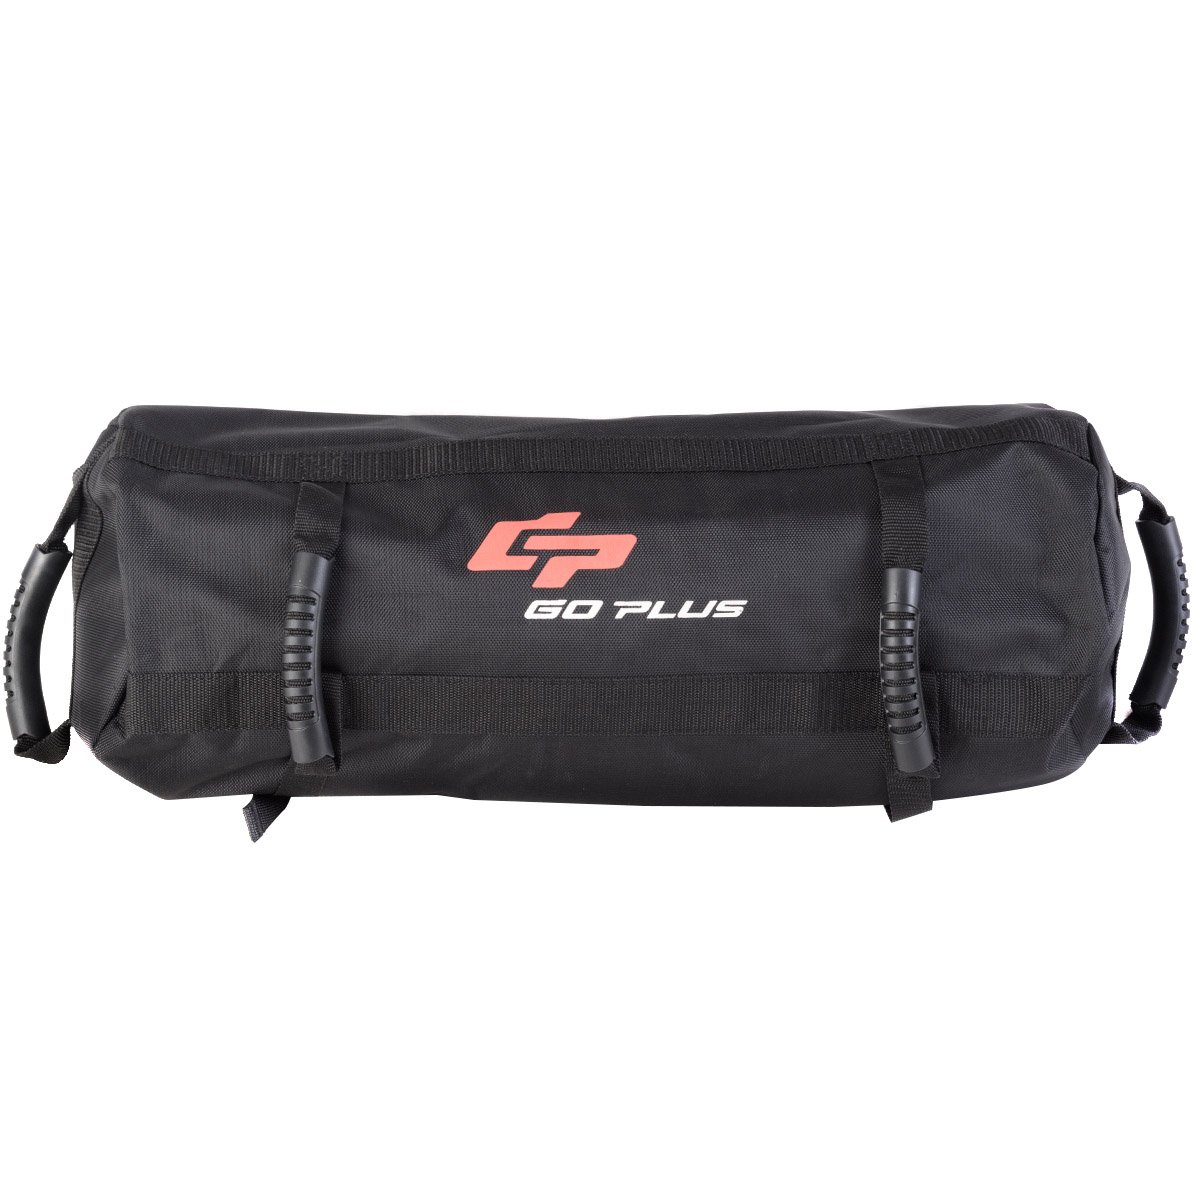 Goplus Fitness Sandbag w//Filler Bag 10 to 60 Lbs Adjustable Heavy Military Tactical Training Weight Bags